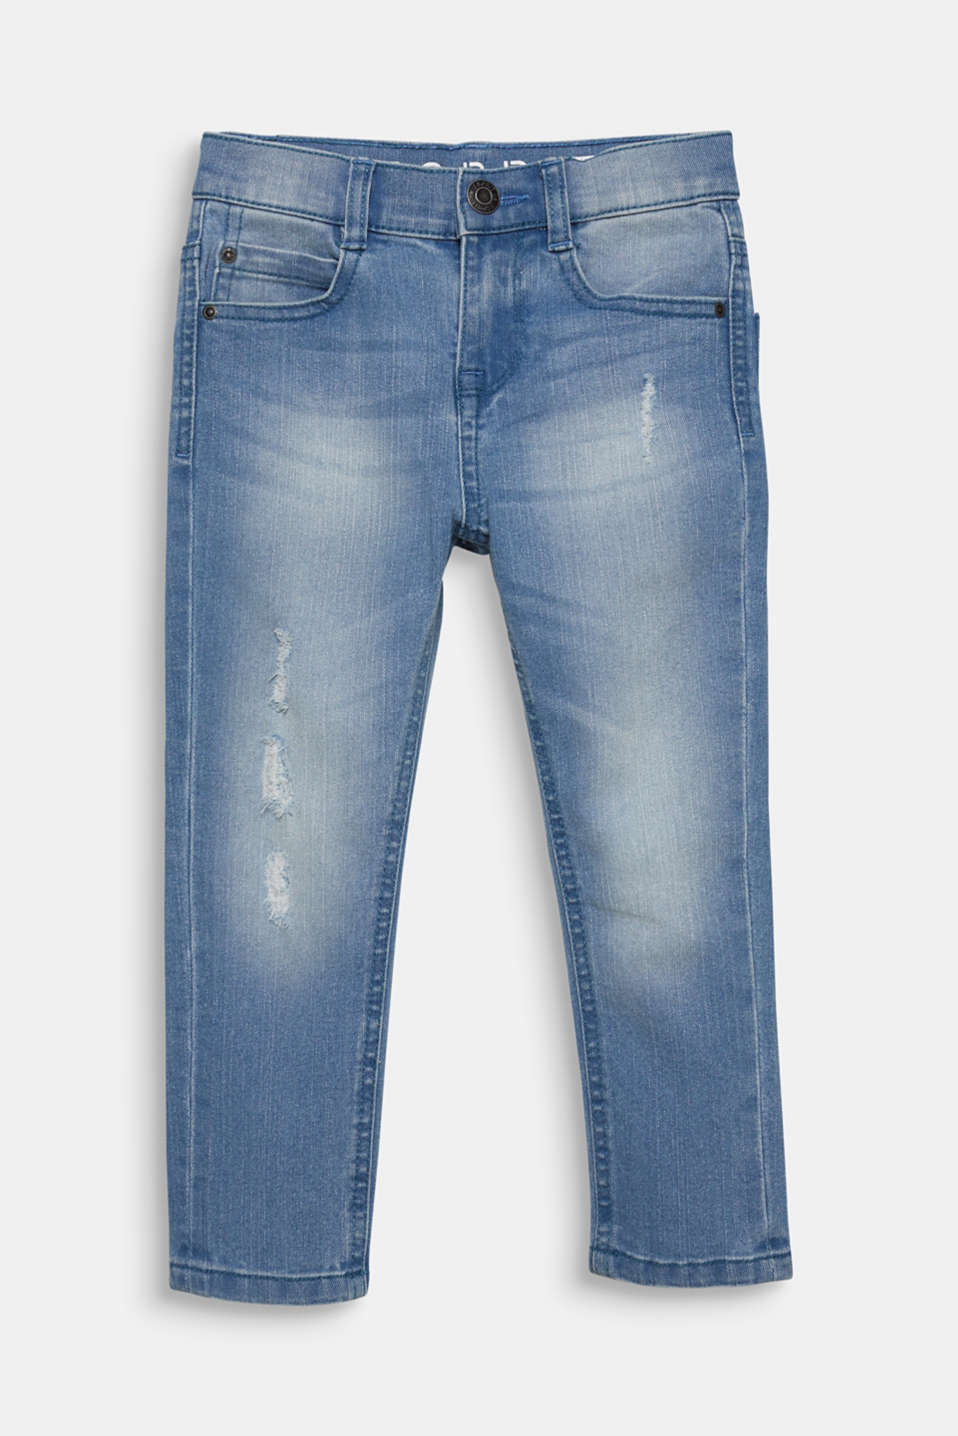 Tapered-Fit Jeans with vintage details, adjustable waistband, LIGHT INDIGO D, detail image number 0